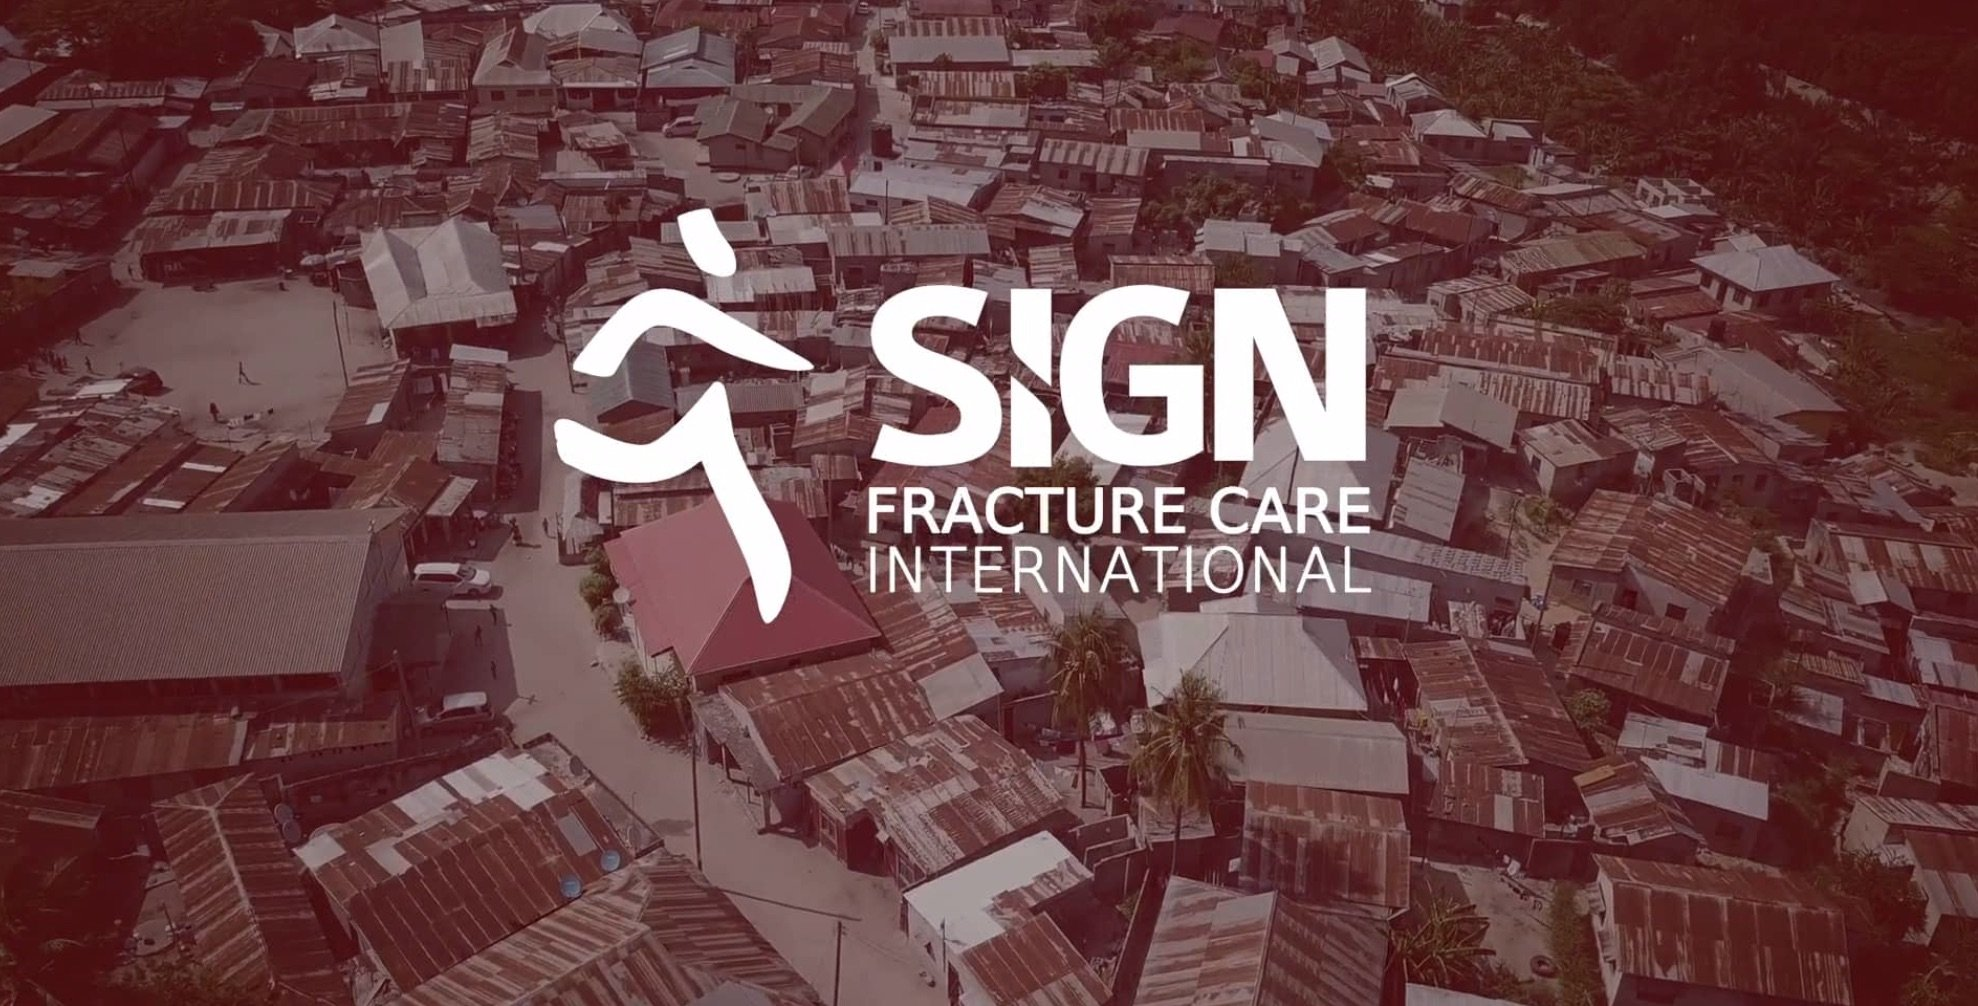 SIGN Fracture Care video production by Dorst MediaWorks